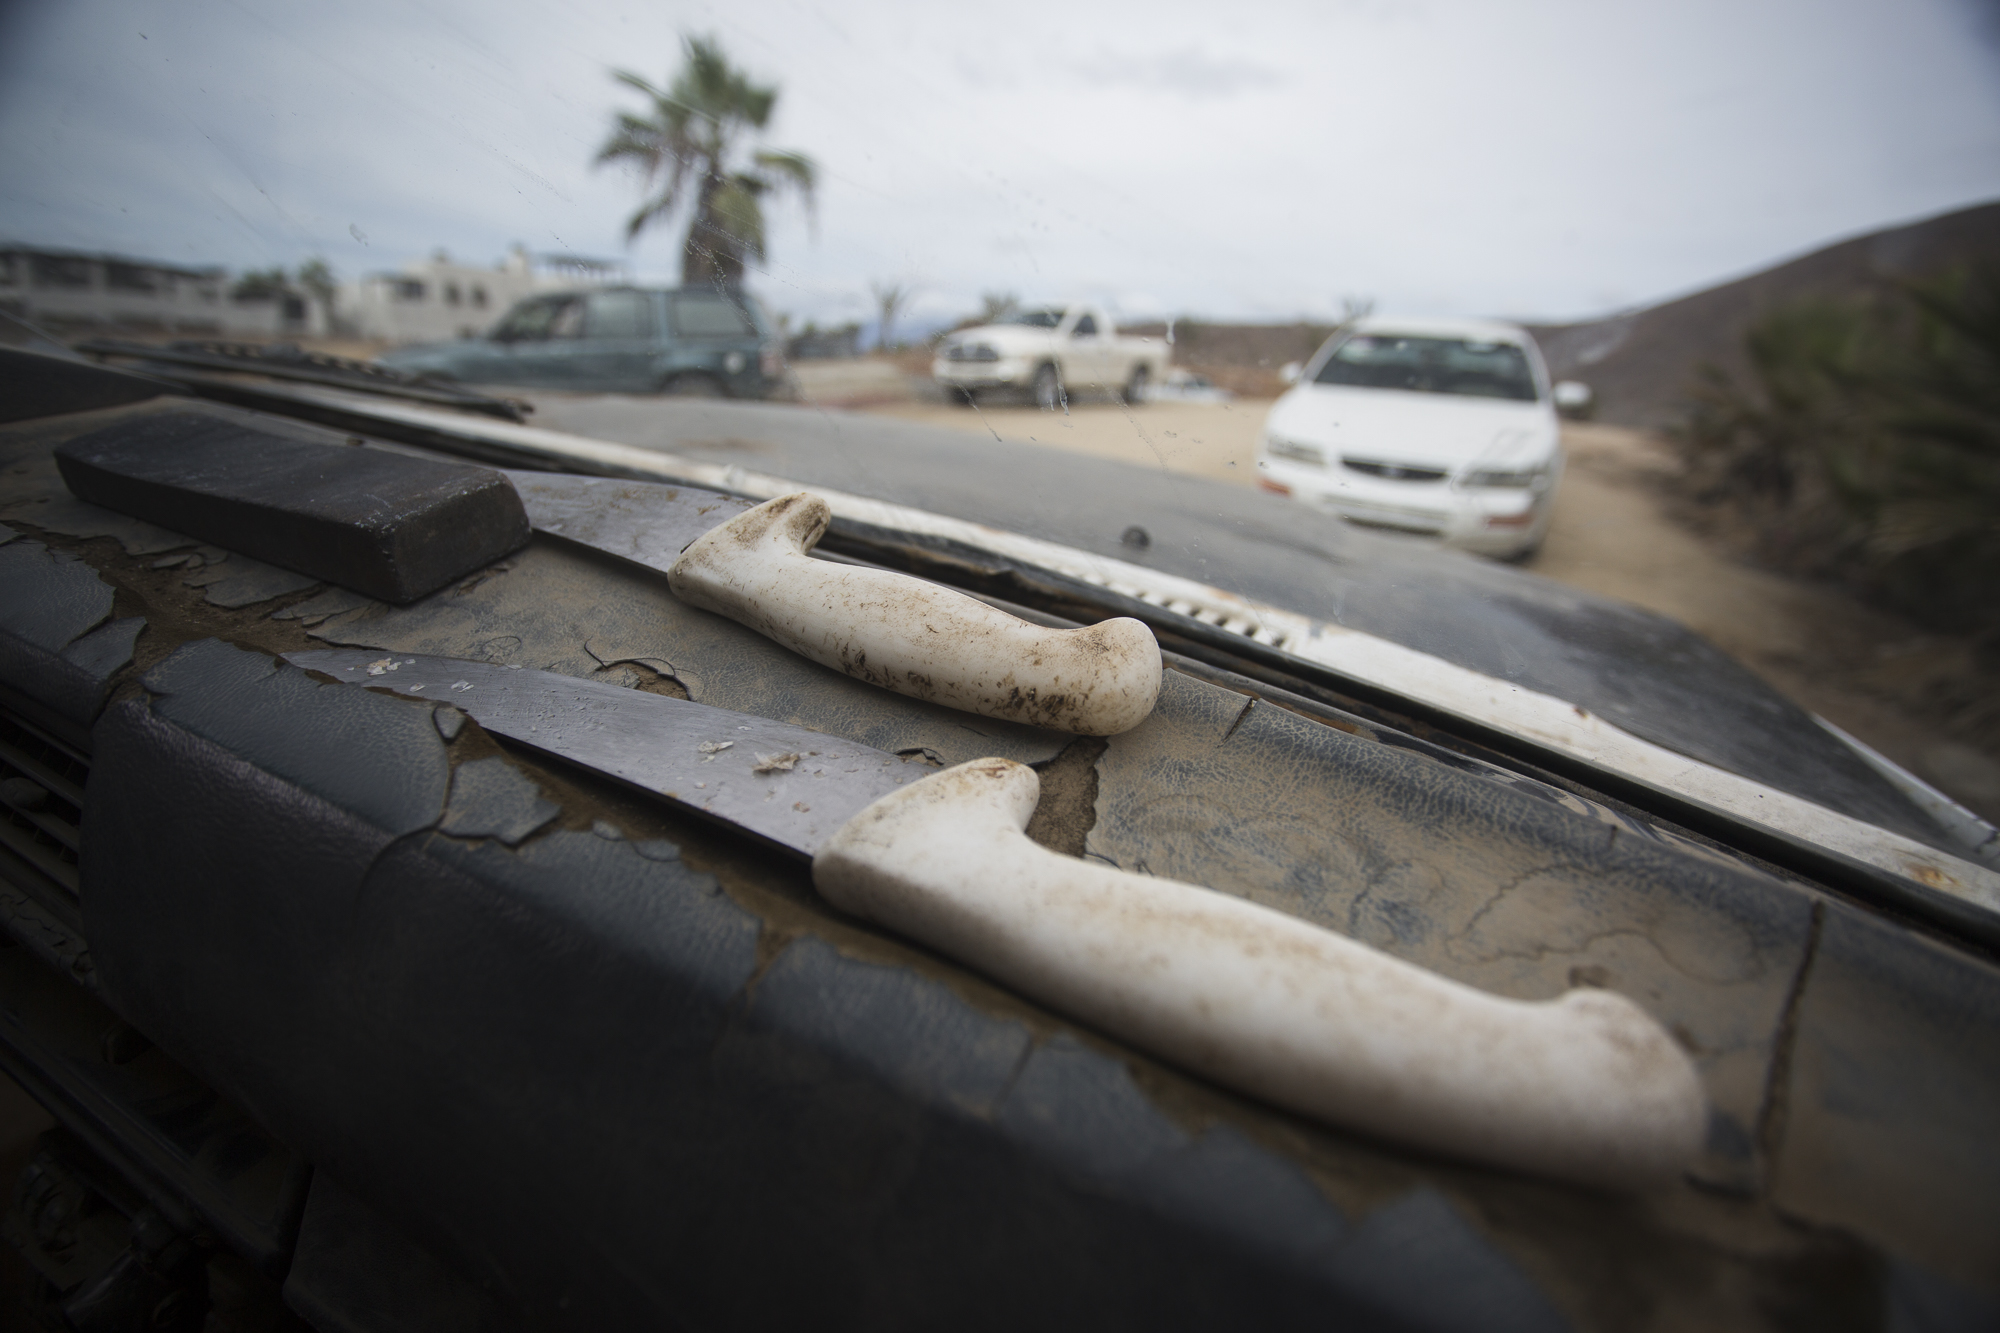 Two knives and a whetstone used to gut and clean fish sit on a fisherman's car dashboard. The lives of around 80 families in the neighboring towns of Todos Santos and El Pescadero are dedicated to shark fishing; with many of the families having been involved in the trade for generations.